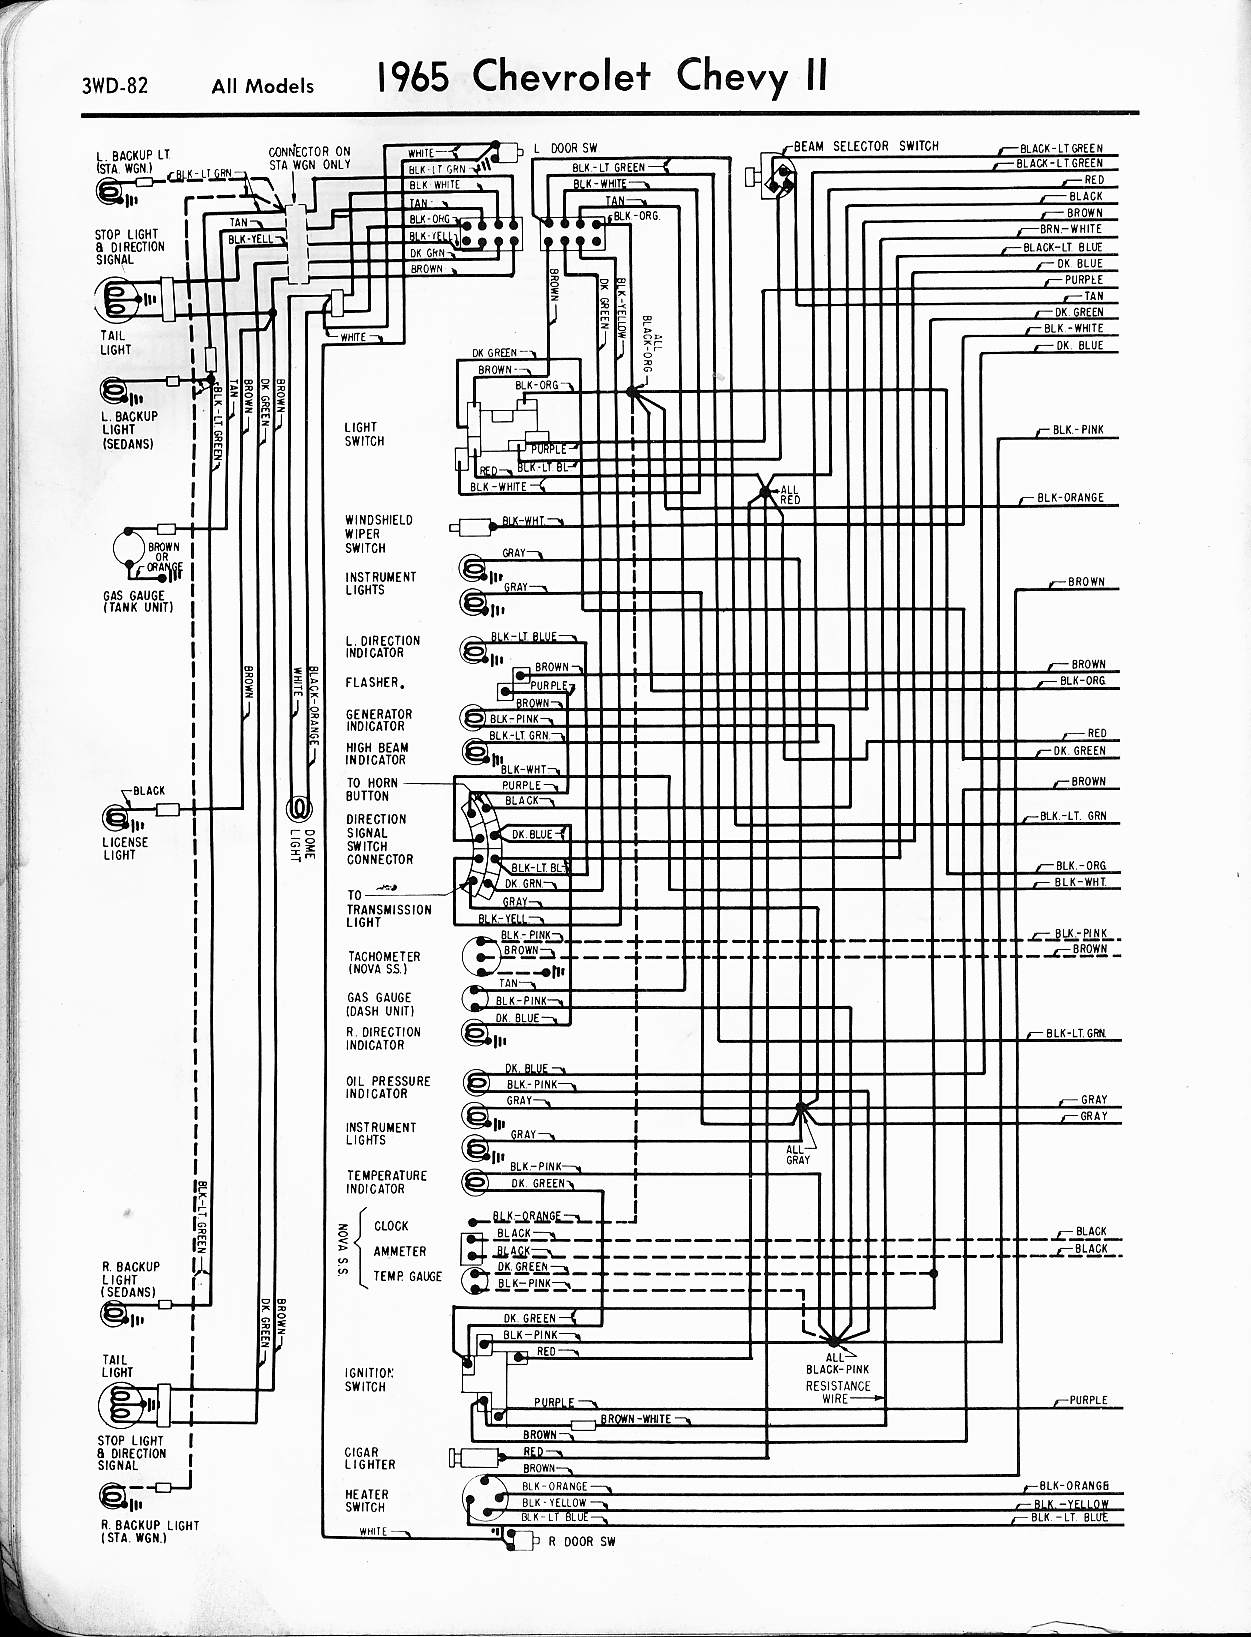 MWireChev65_3WD 082 chevrolet wiring schematics chevrolet wiring diagrams instruction chevy wiring schematics at bayanpartner.co